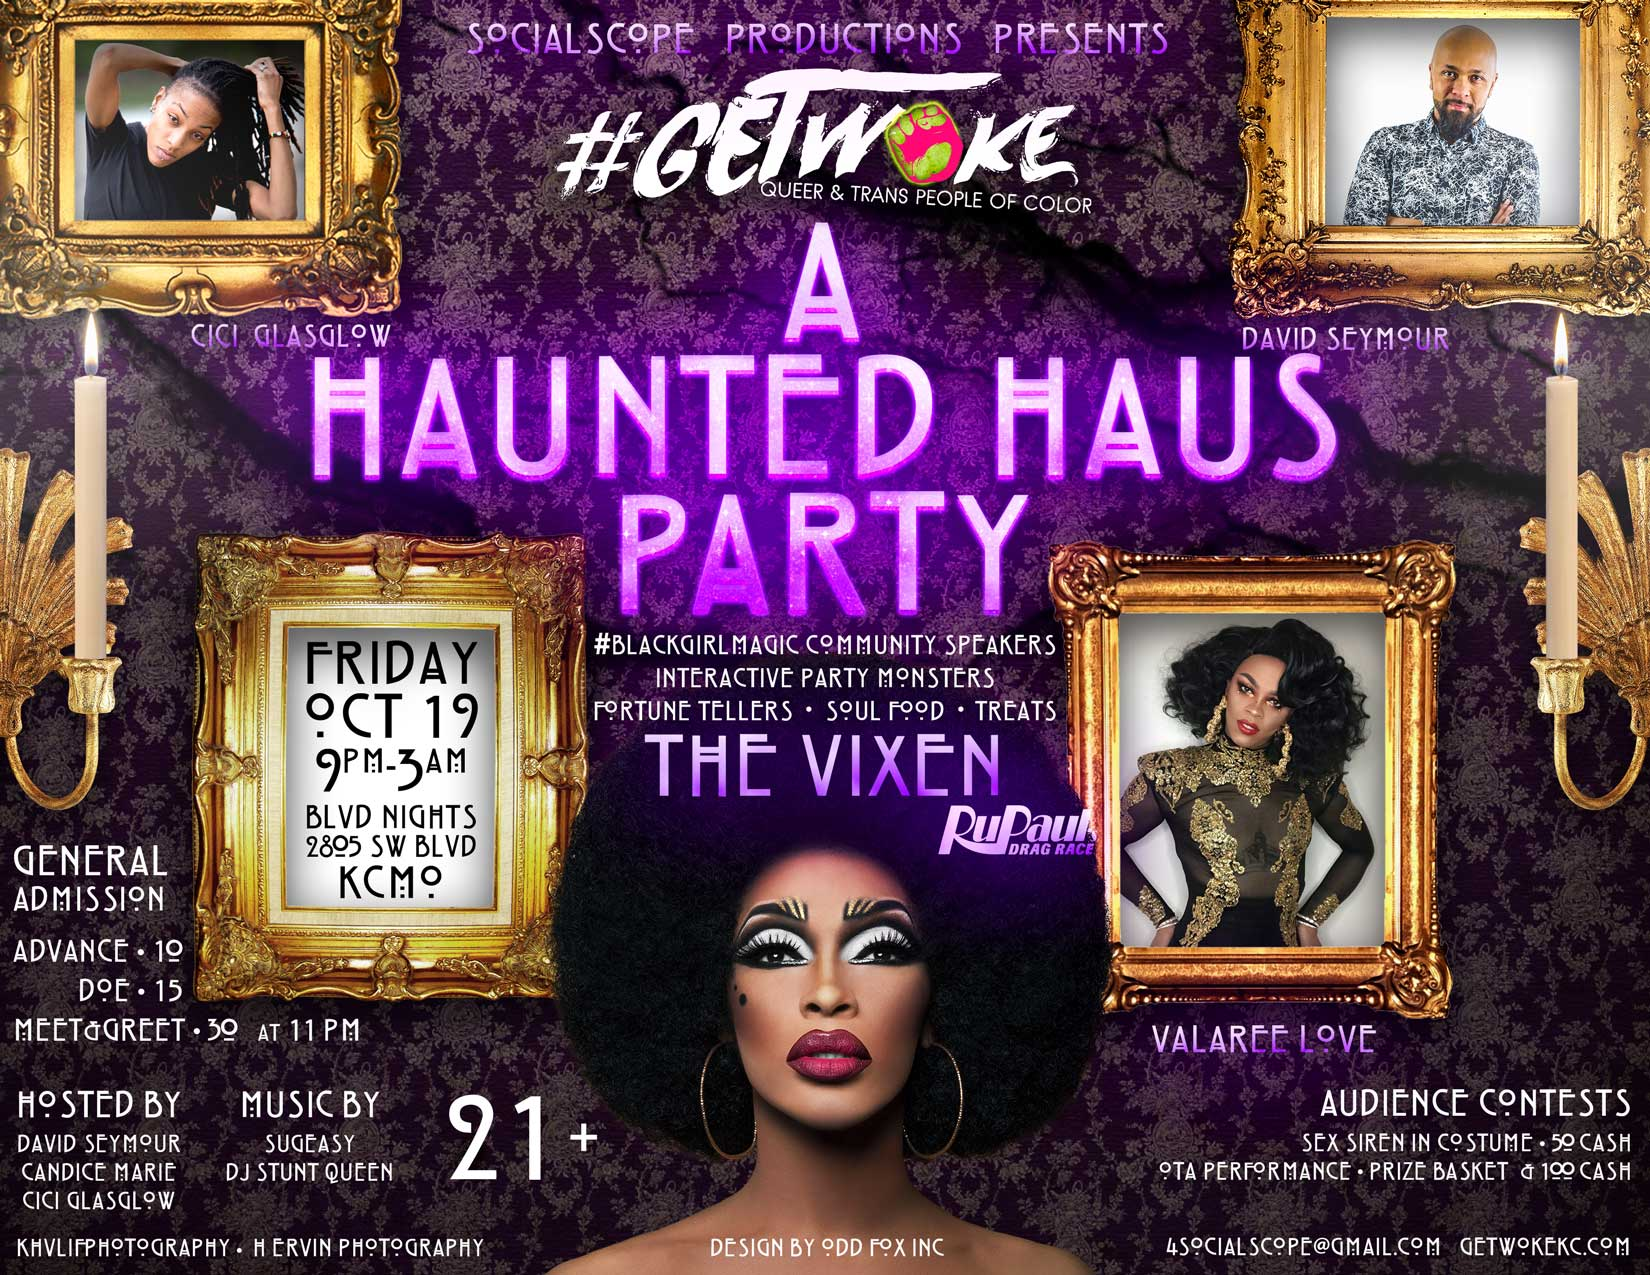 A Haunted Haus Party